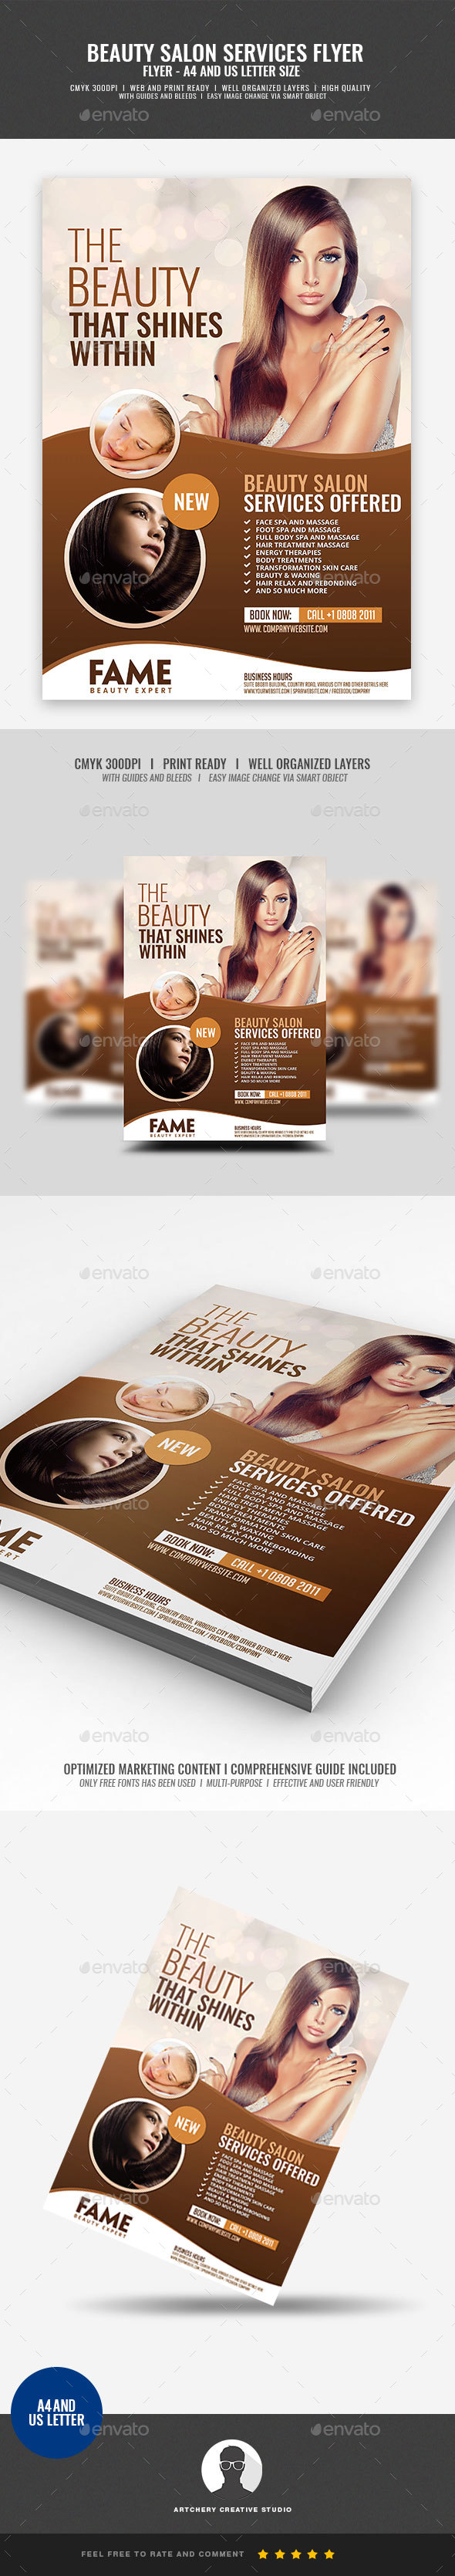 Hair Salon and Makeup Services - Corporate Flyers